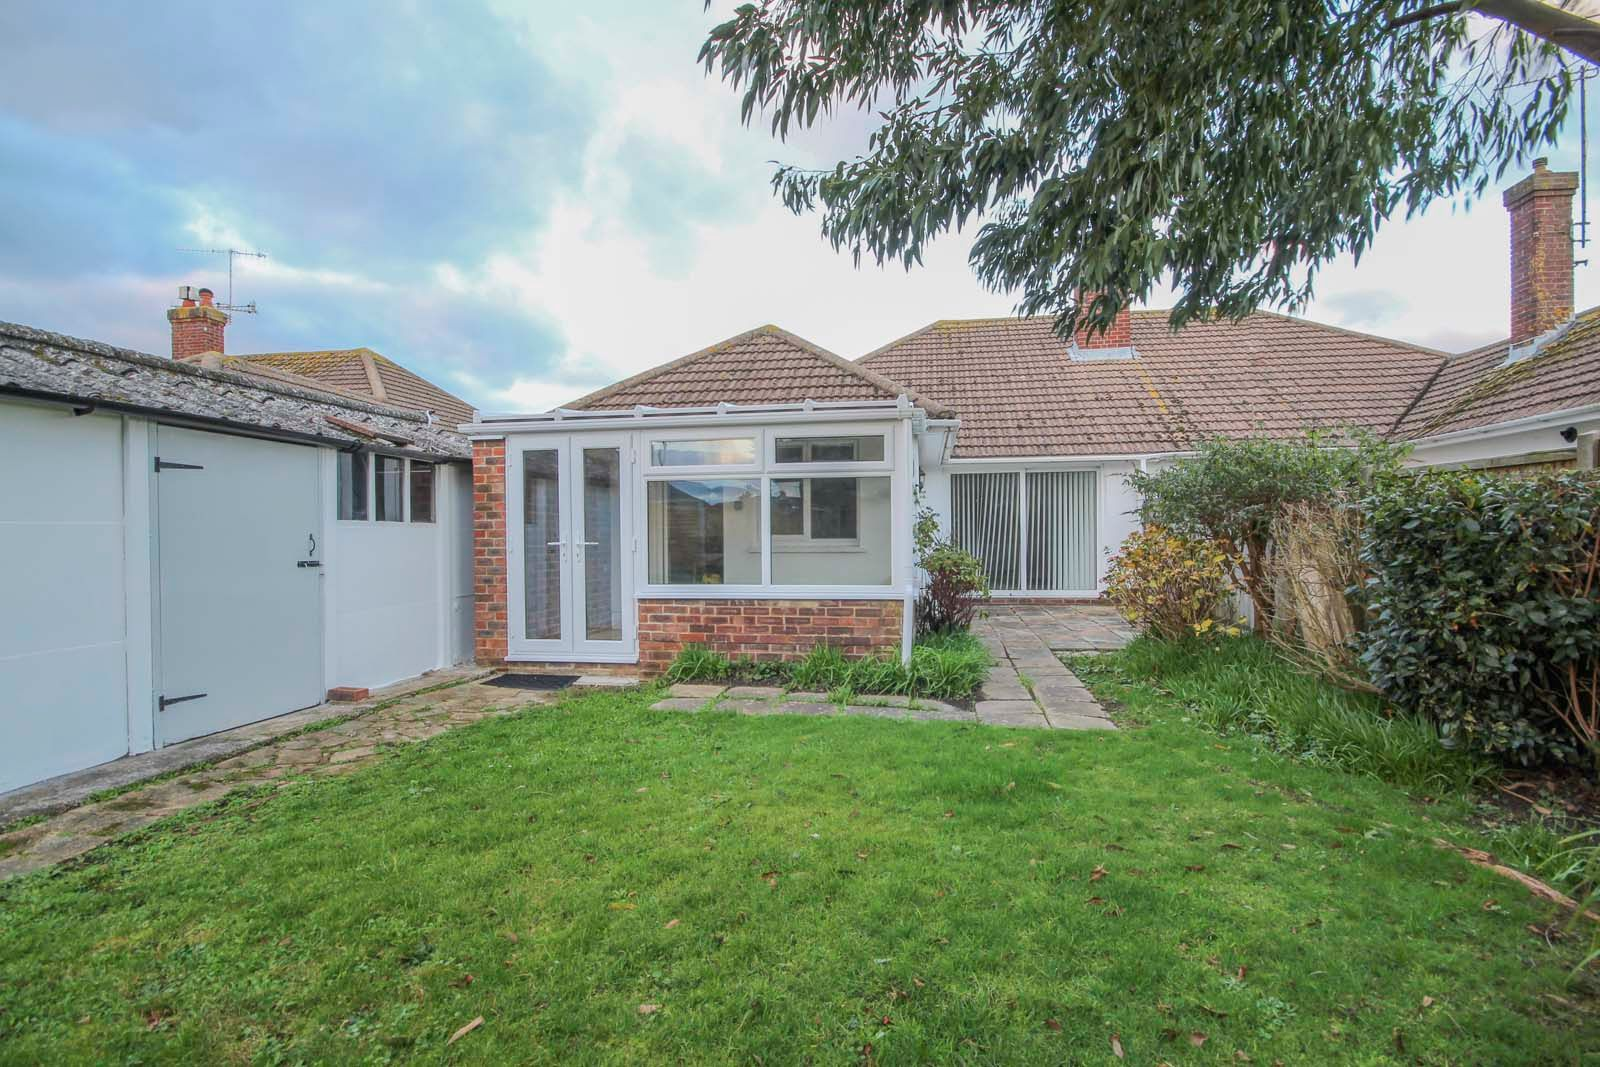 3 bed bungalow for sale in Hillview Crescent COMP MAY 2019 3